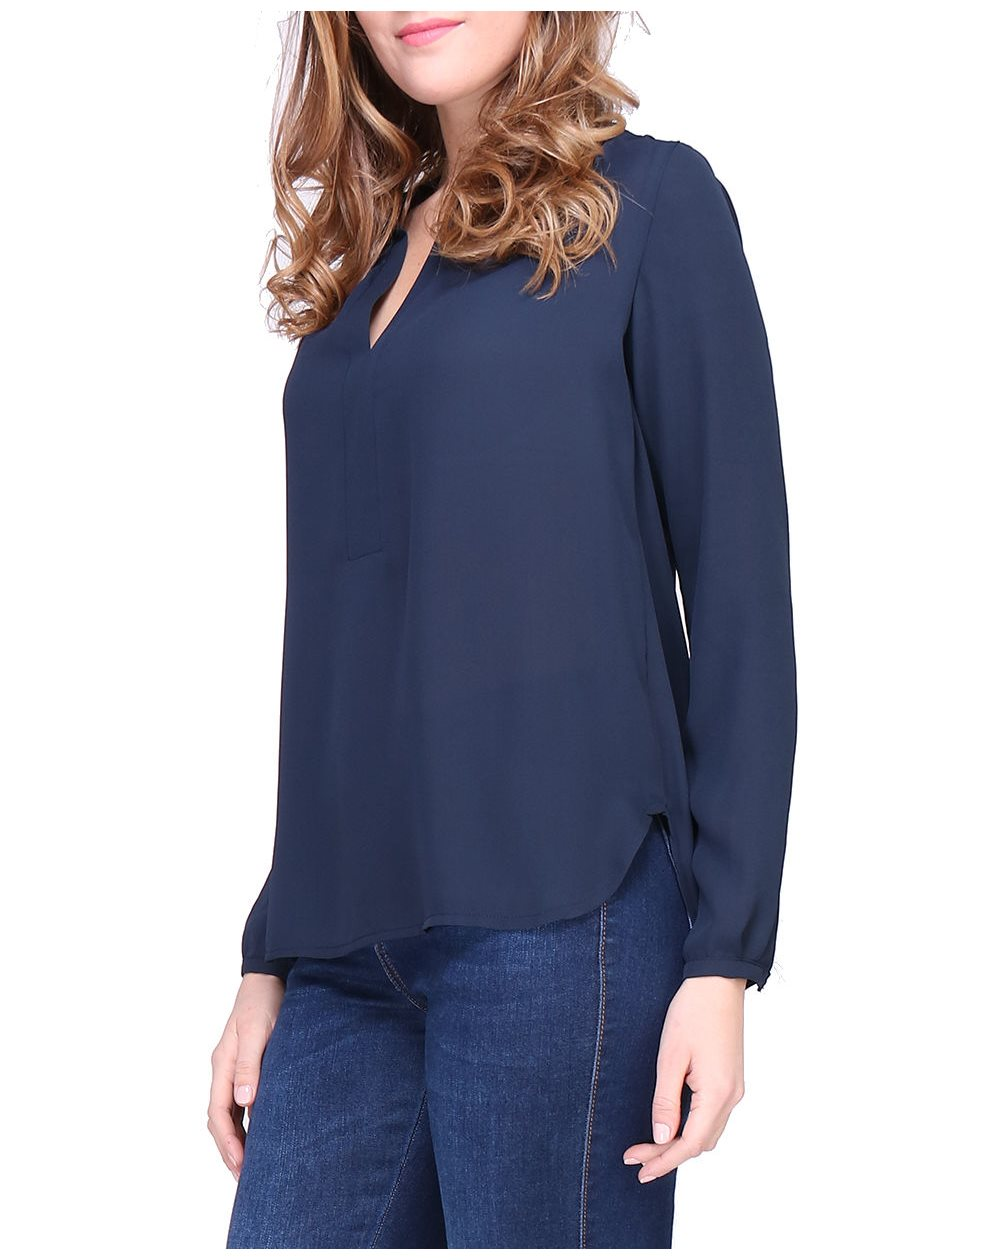 Revdelle - Blouse col V Made in France manches 3/4 Femme Ombrette